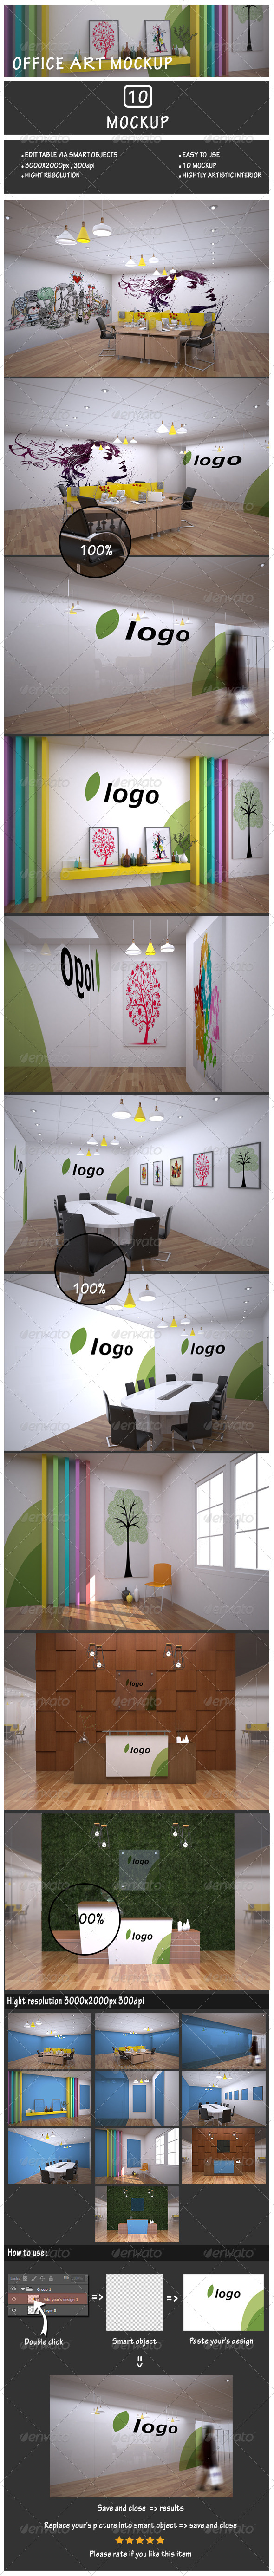 GraphicRiver Office Art Mockup 7450252